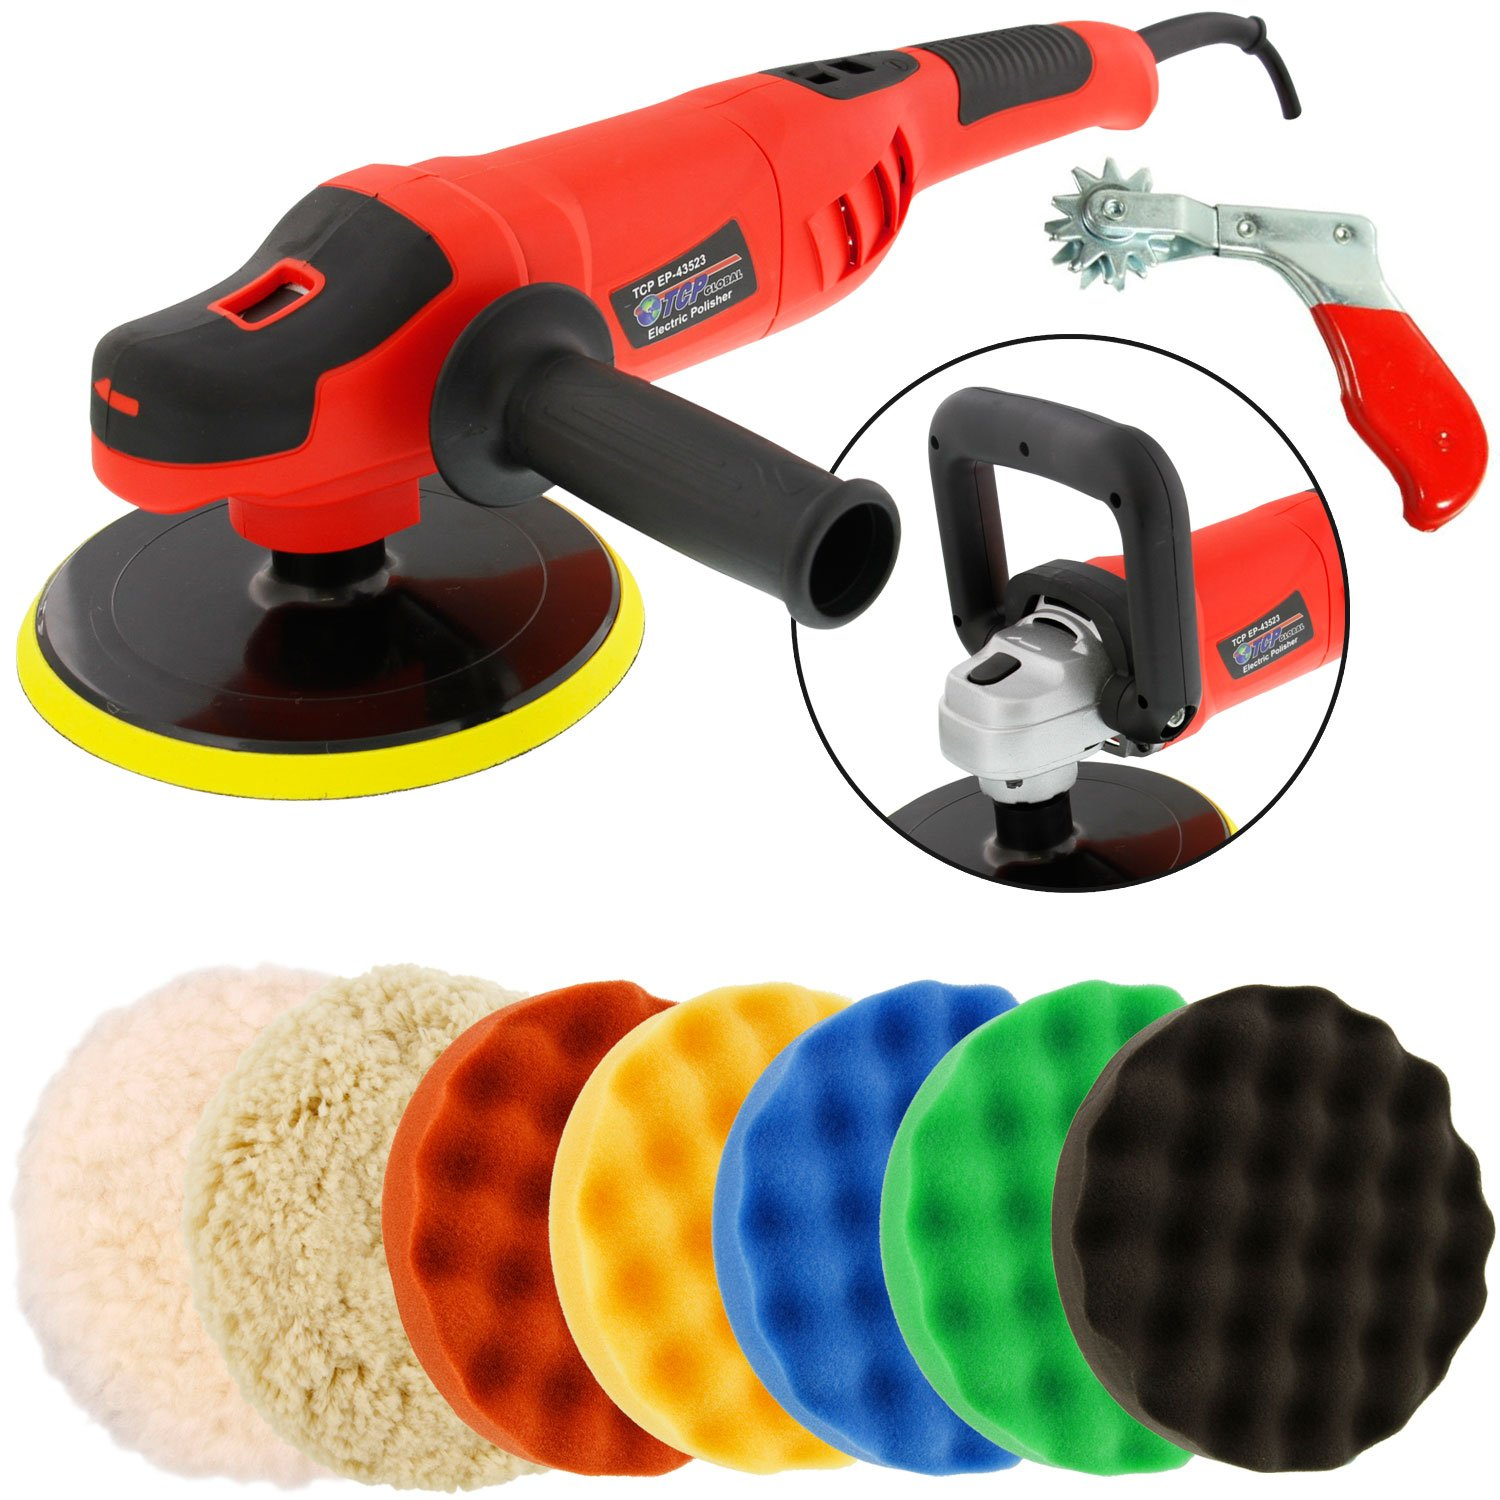 TCP Global Powerful 7'' Variable Speed Polisher with Digital RPM Display with 6-Waffle Foam Polishing Pads